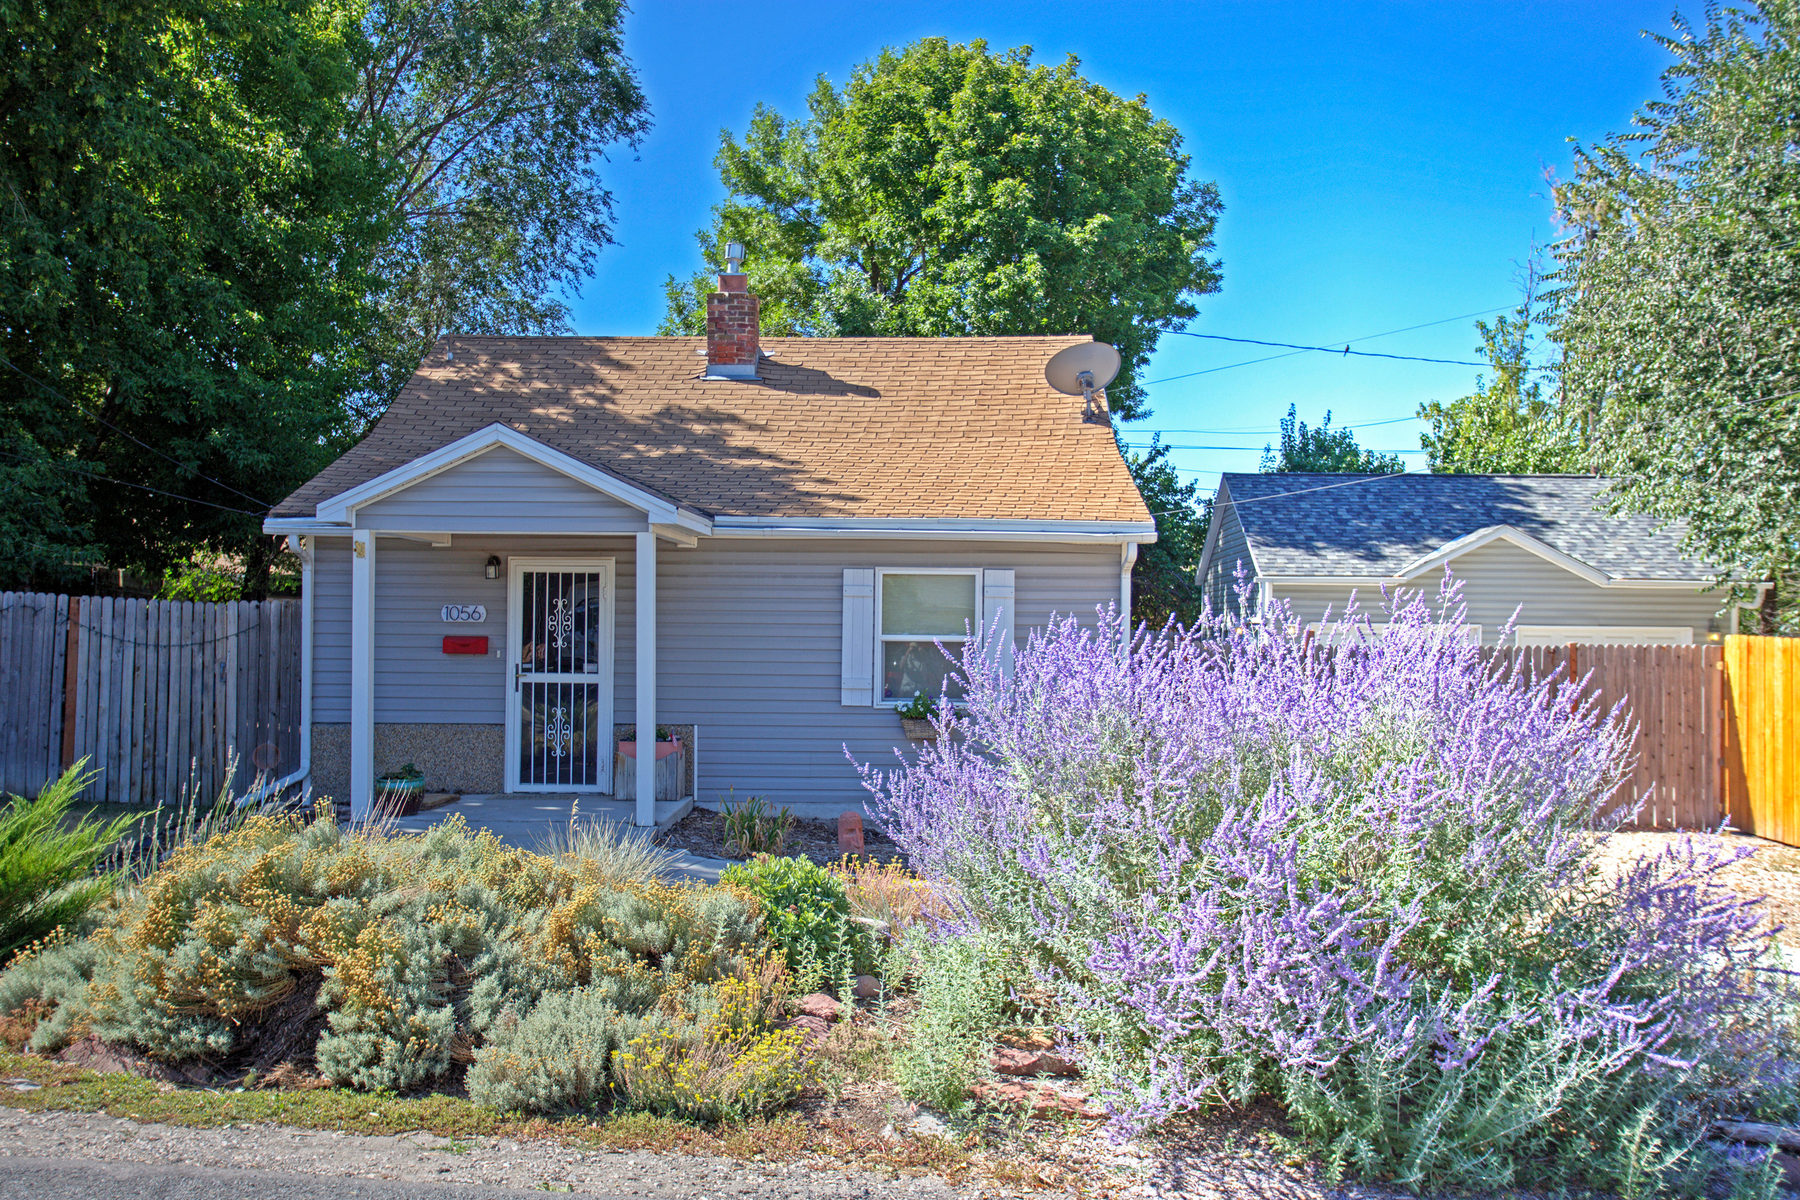 Single Family Home for Sale at Charming Curb Appeal 1056 Atkin Ave Salt Lake City, Utah 84106 United States